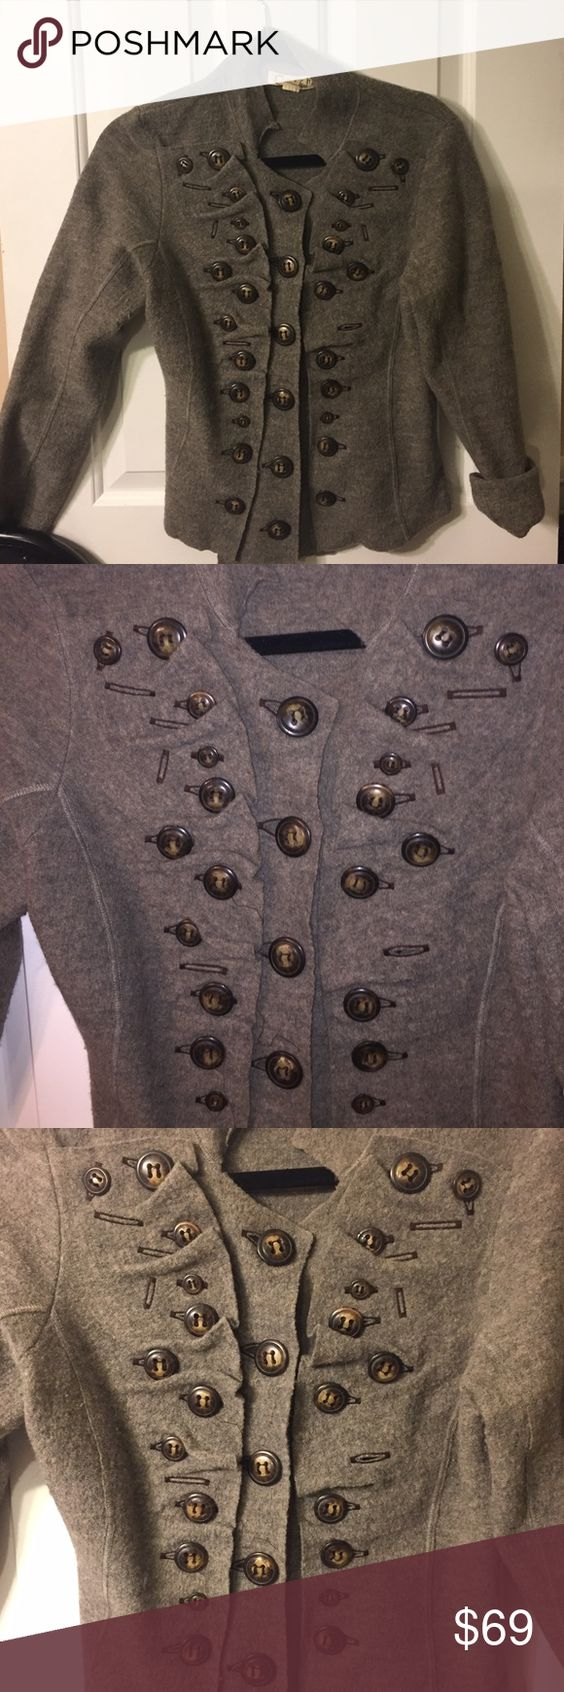 Anthropologie crazy button up sweater!! So cool | D, Sweater ...